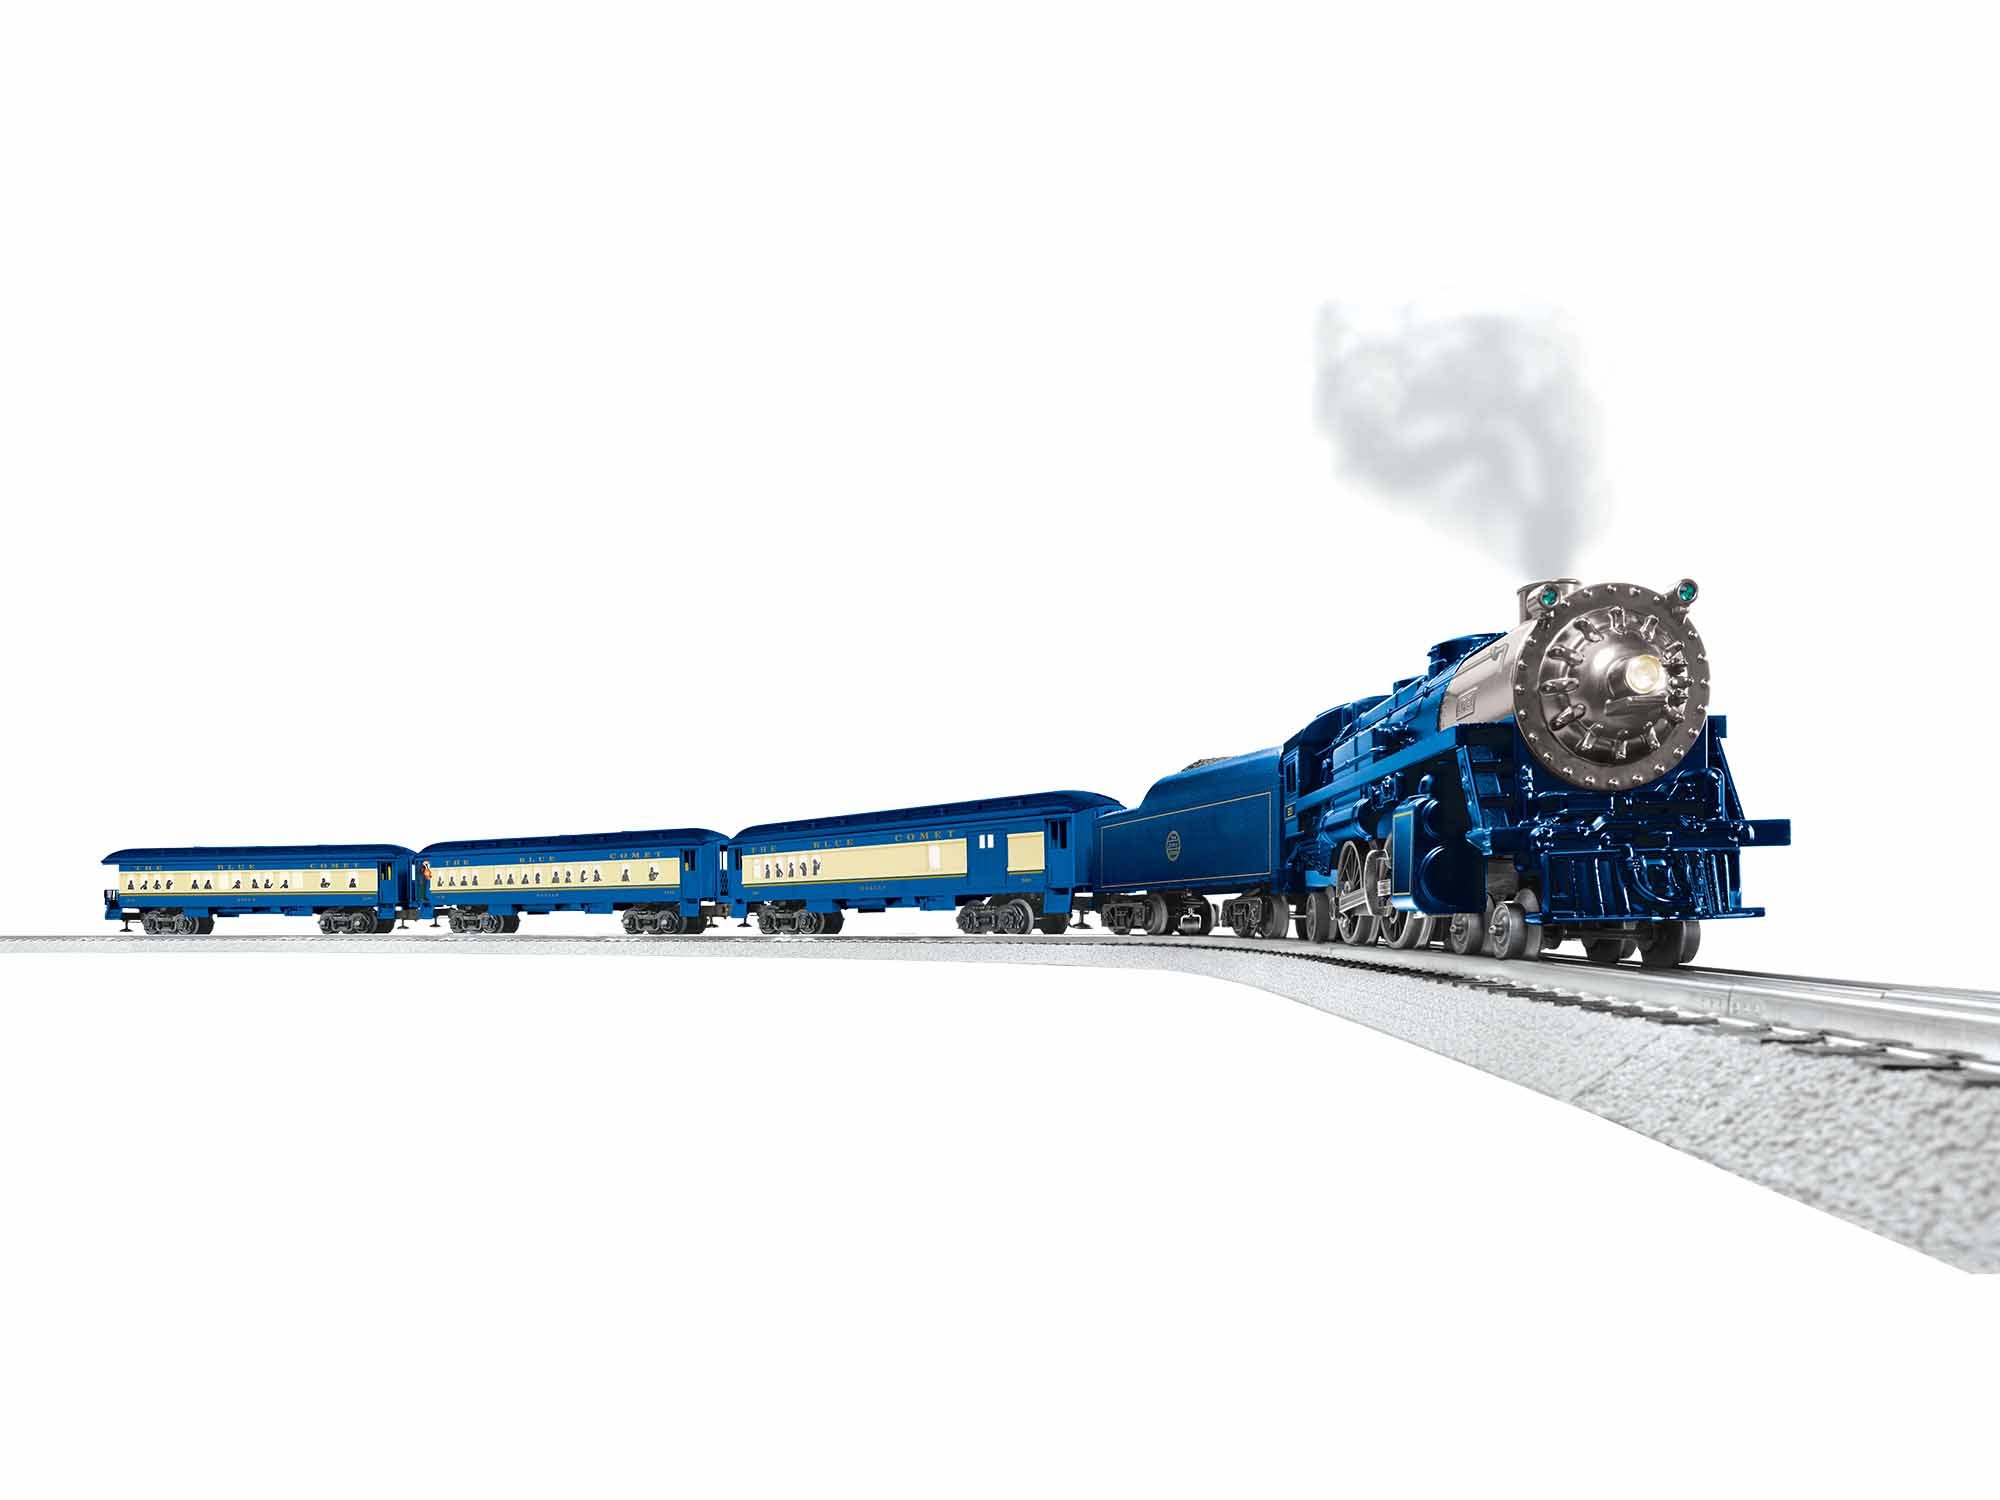 Lionel 1923070 O Comet Steam Passenger Set 3-Rail LionChief Bluetooth Central of New Jersey 4-4-2 434-1923070